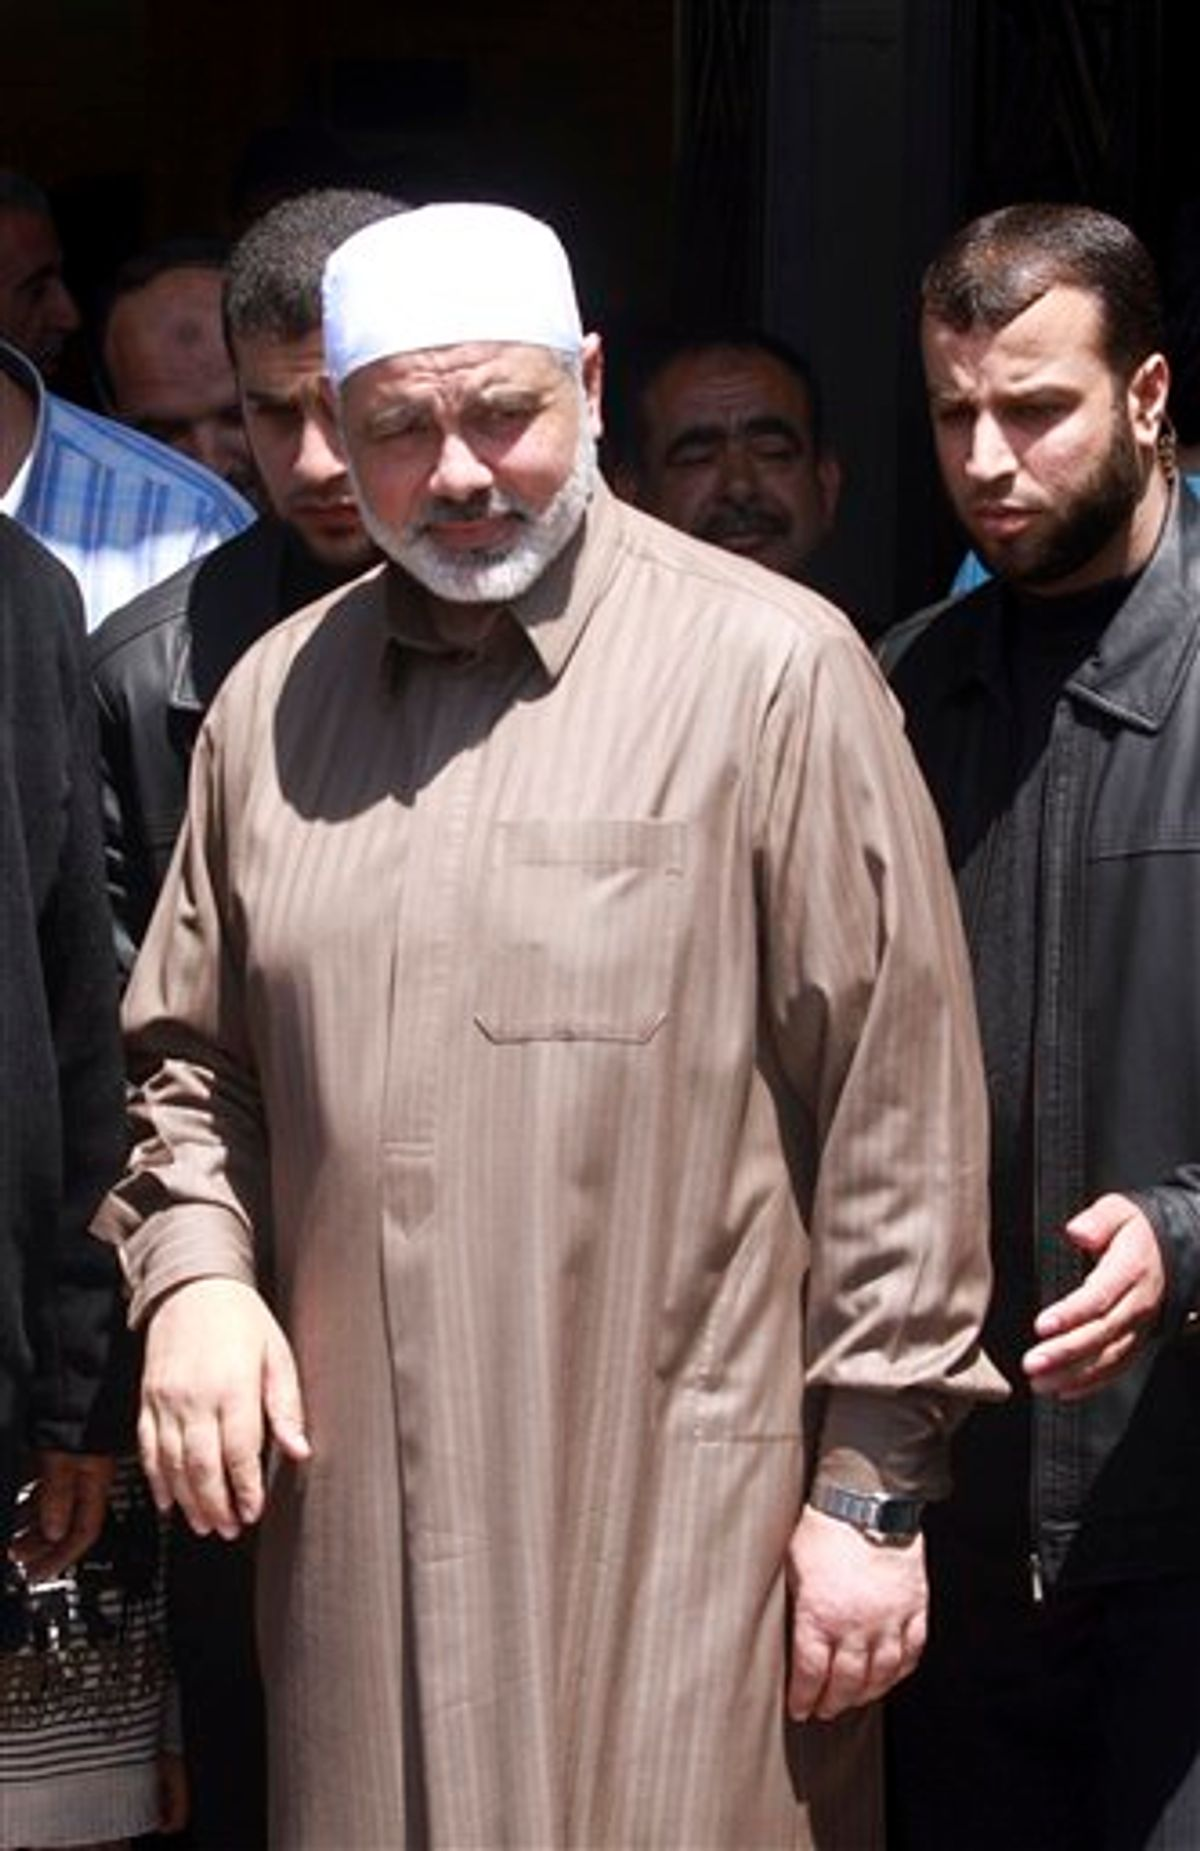 Gaza's Hamas Prime Minister Ismail Haniyeh leaves a mosque after Friday prayers in Gaza City, Friday, April 29, 2011. Officials from the rival Fatah and Hamas movements said Wednesday, they have reached an initial agreement on ending a four-year-old rift that has left them divided between rival governments in the West Bank and Gaza Strip.(AP Photo/Hatem Moussa) (AP)